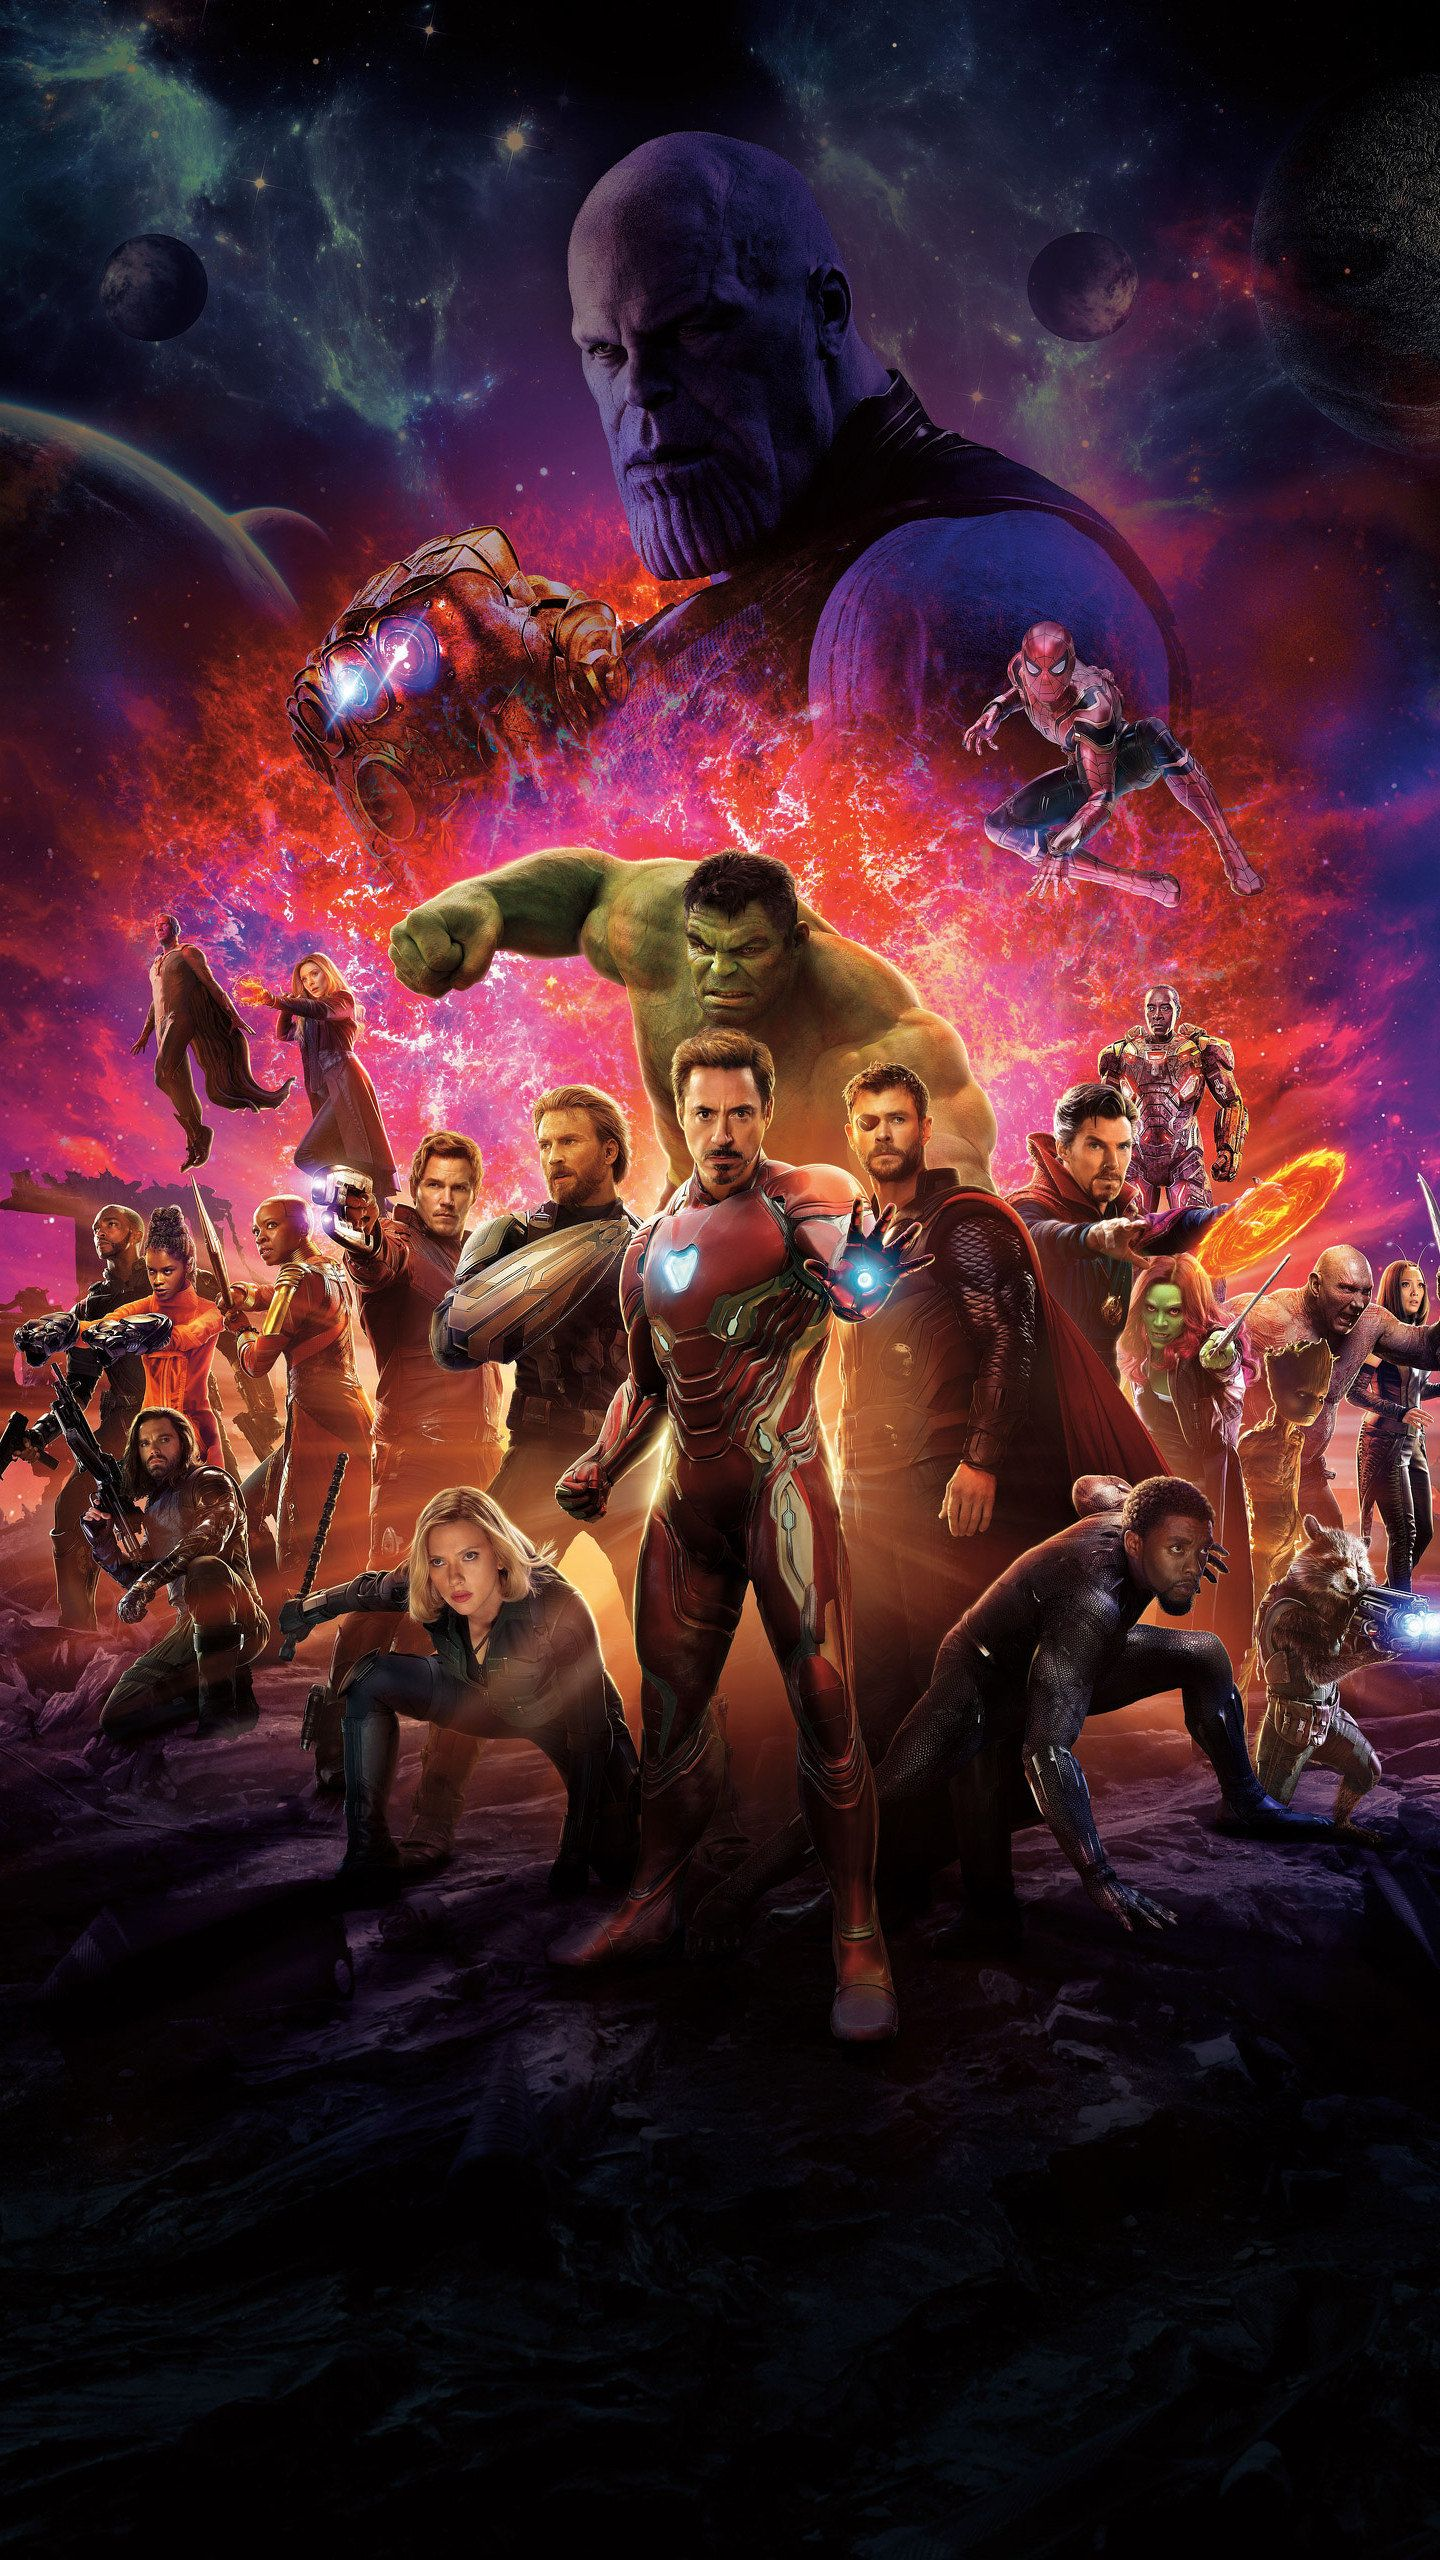 Avengers Infinity War International Poster Hd Movies Wallpapers Photos And Pictures Avengers Pictures Marvel Infinity War Avengers Wallpaper